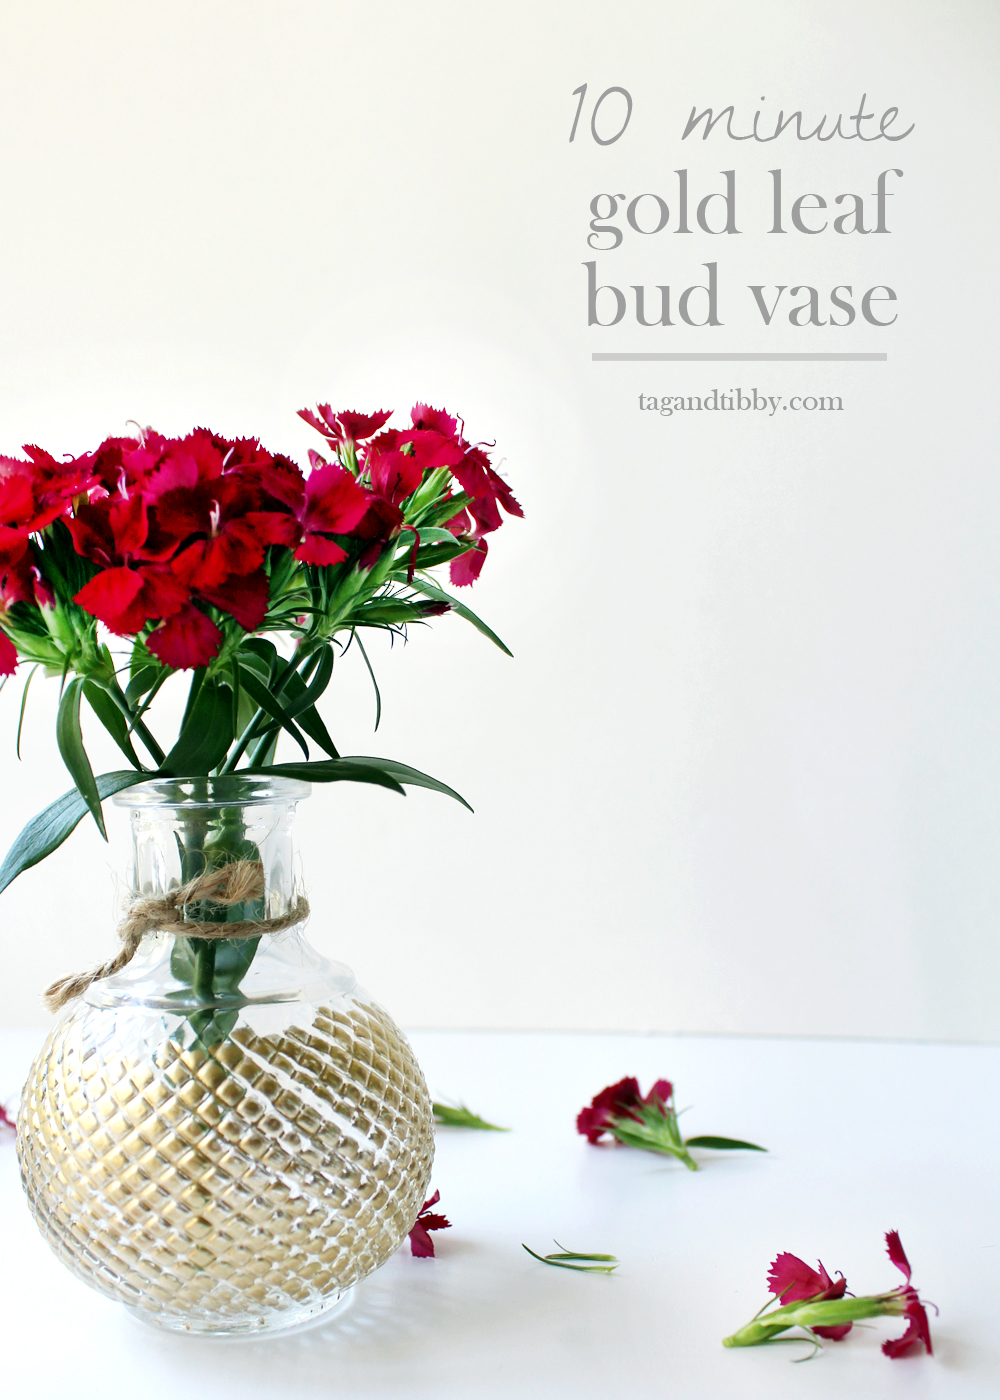 make this 10 minute gold leaf bud for under $10! | tag&tibby